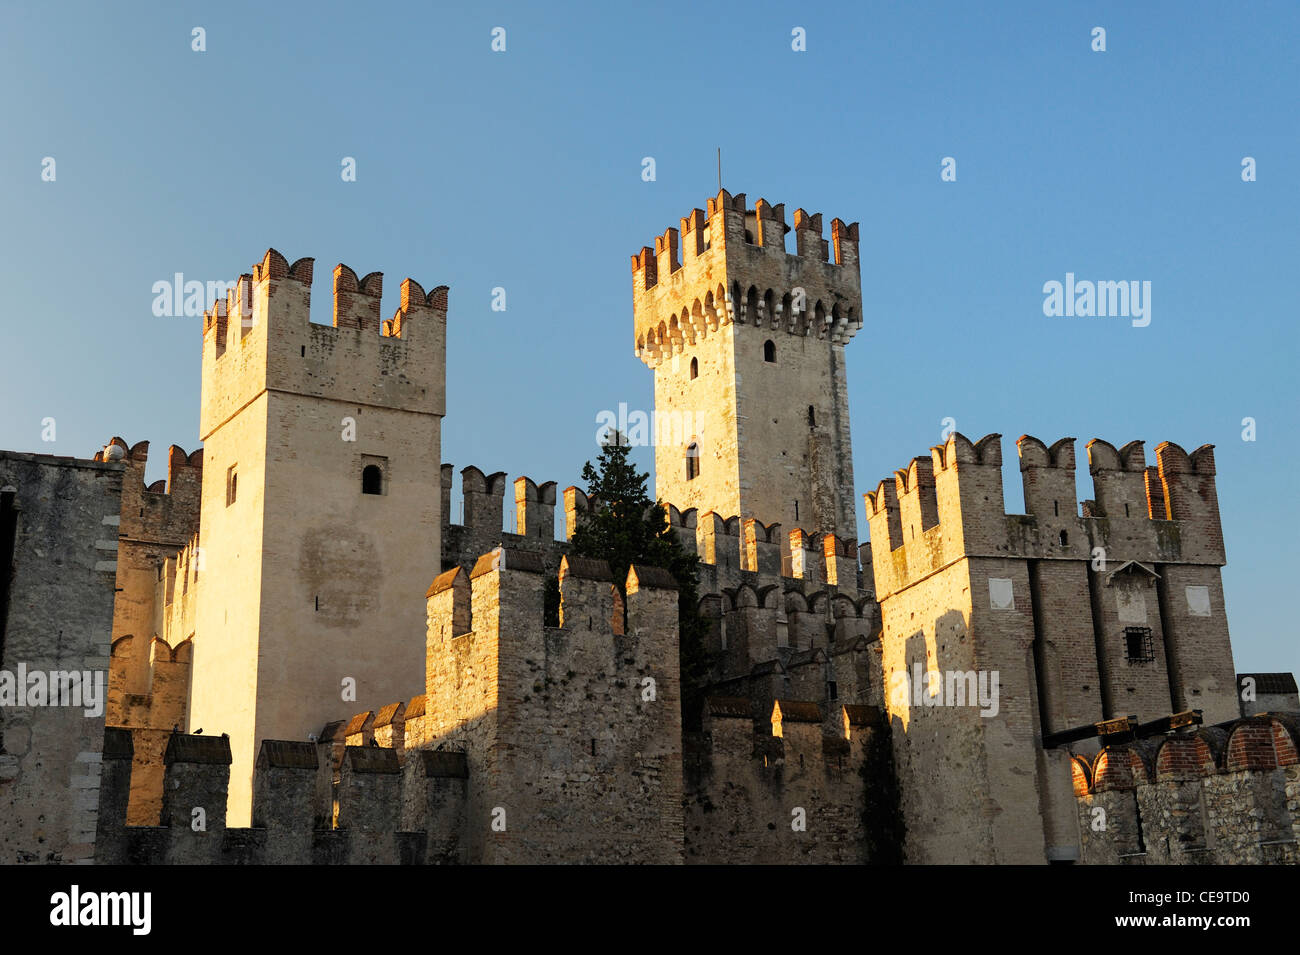 Ancient town tourist centre of Sirmione on Lake Garda, Lombardy, north Italy. Gateway and keep towers of 13 C. Scaliger - Stock Image